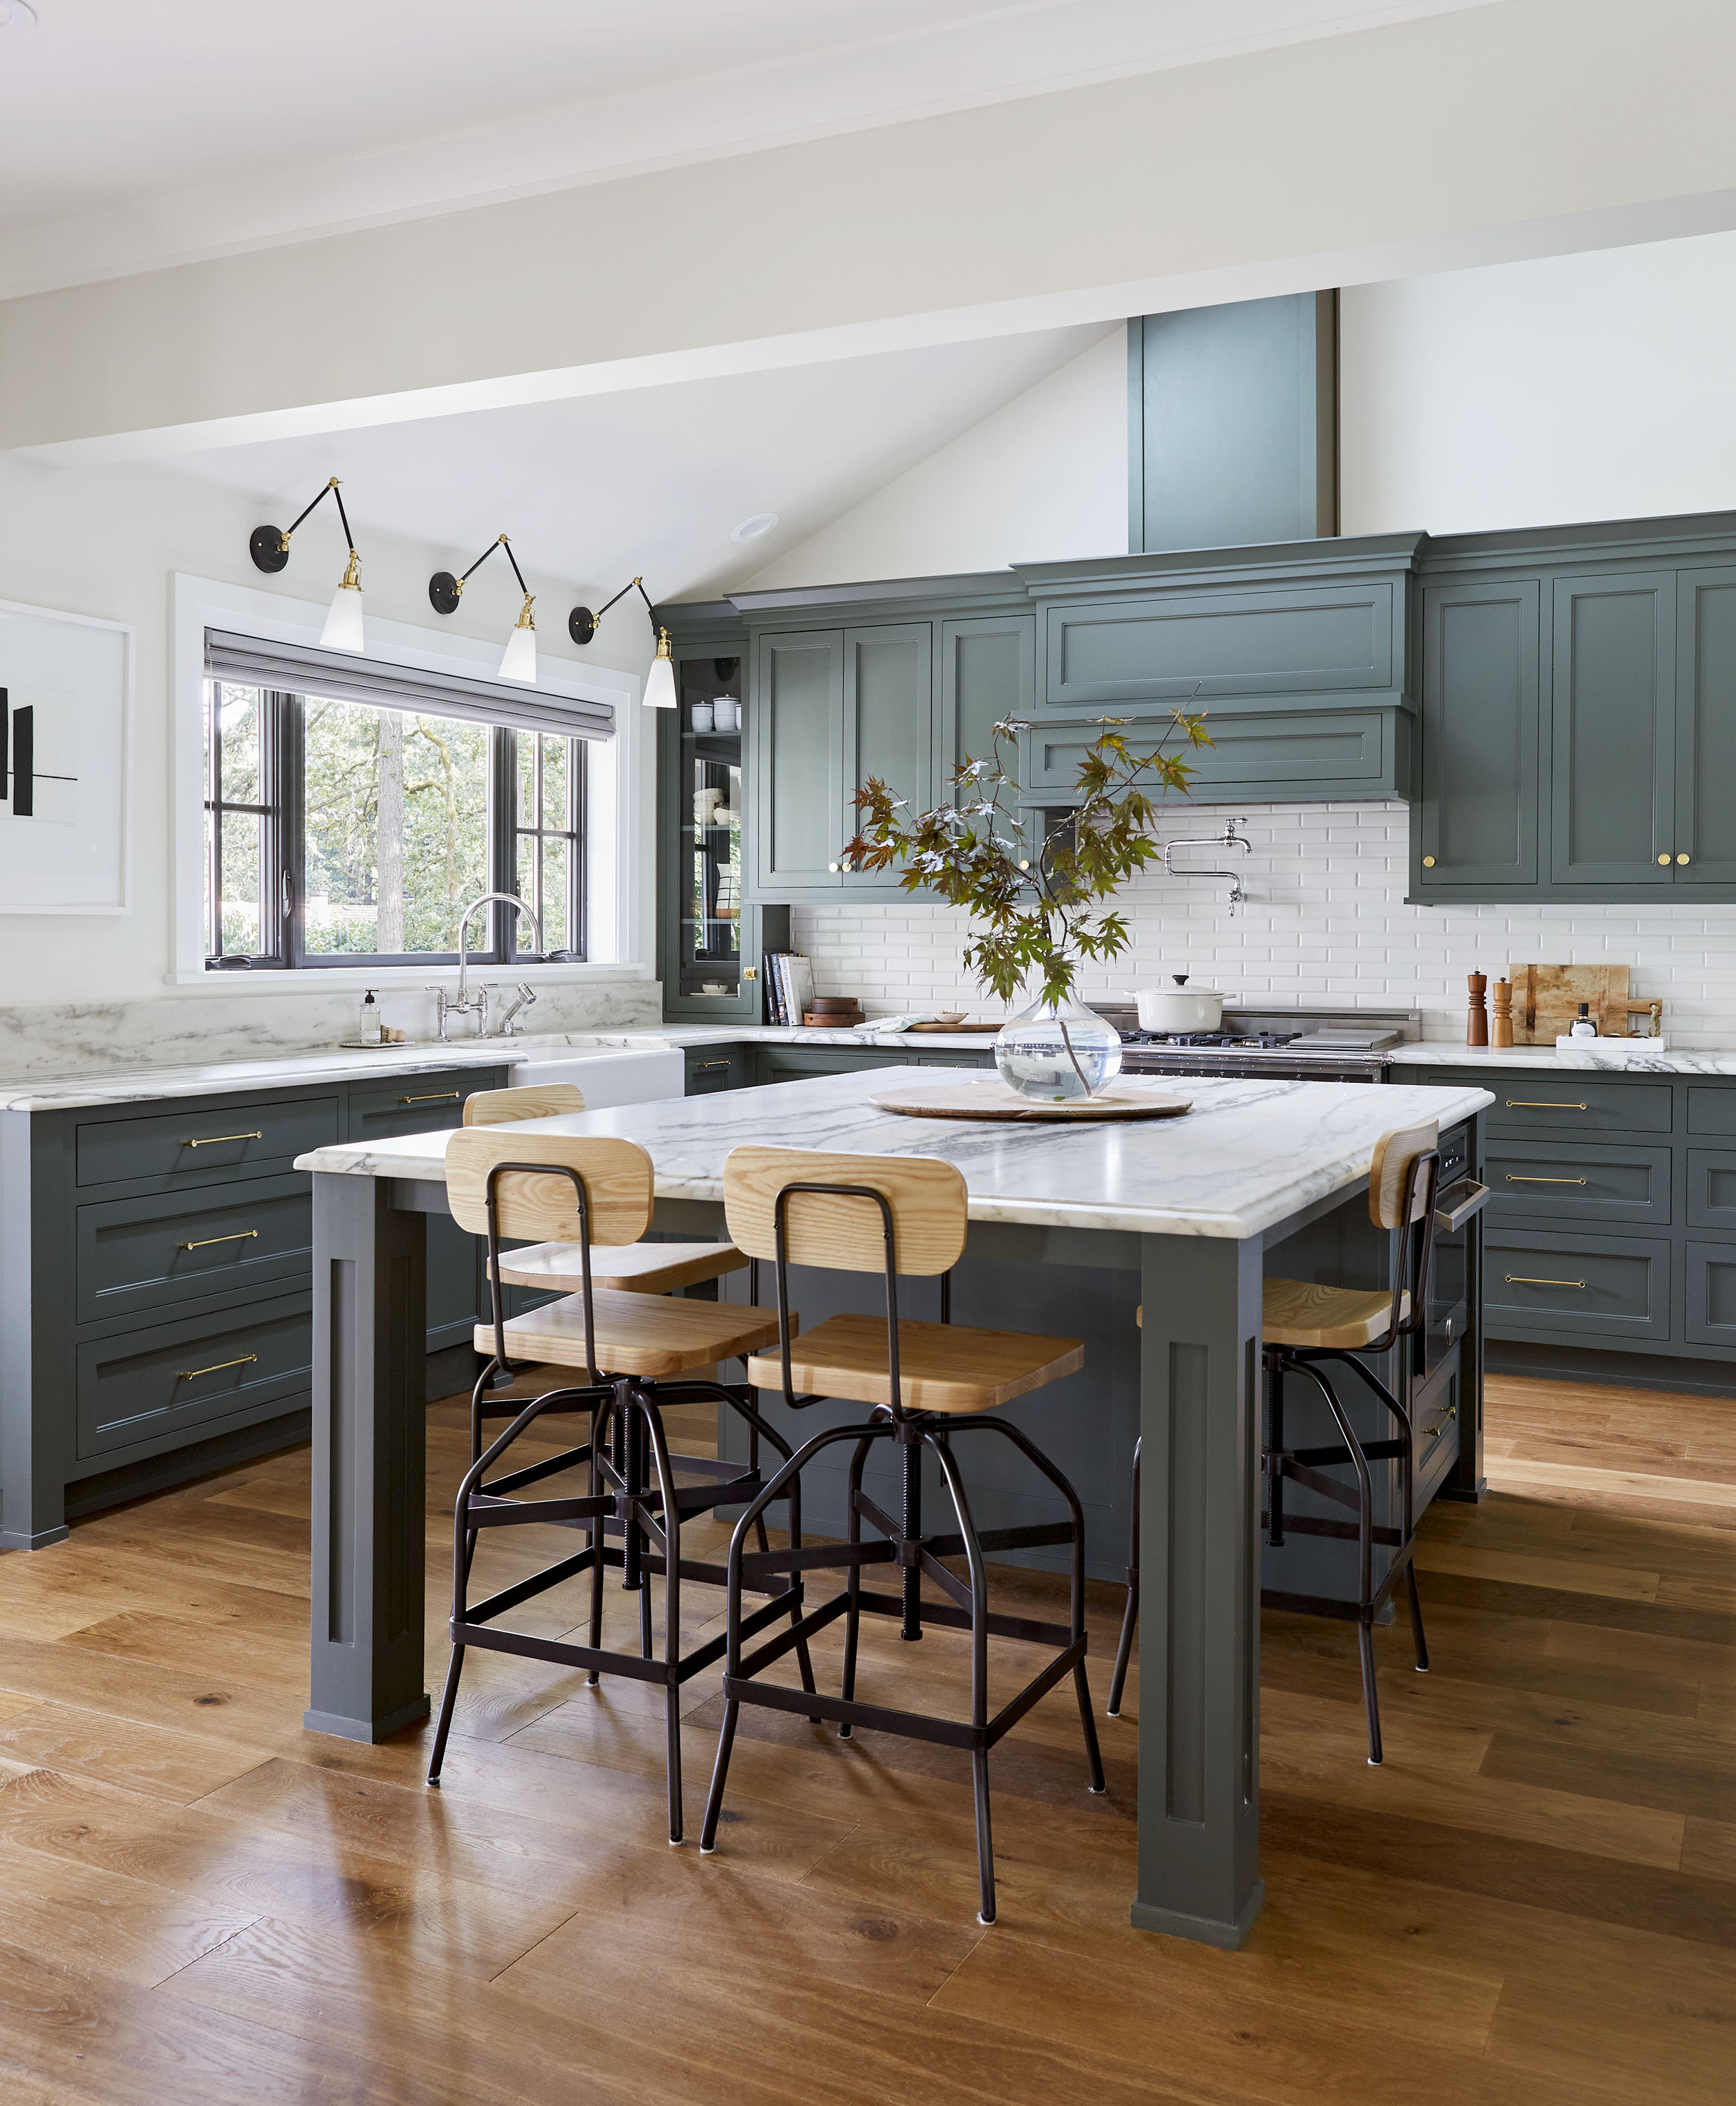 The Kitchen Colours For 2019: This Is The Kitchen Colour You'll Be Seeing EVERYWHERE In